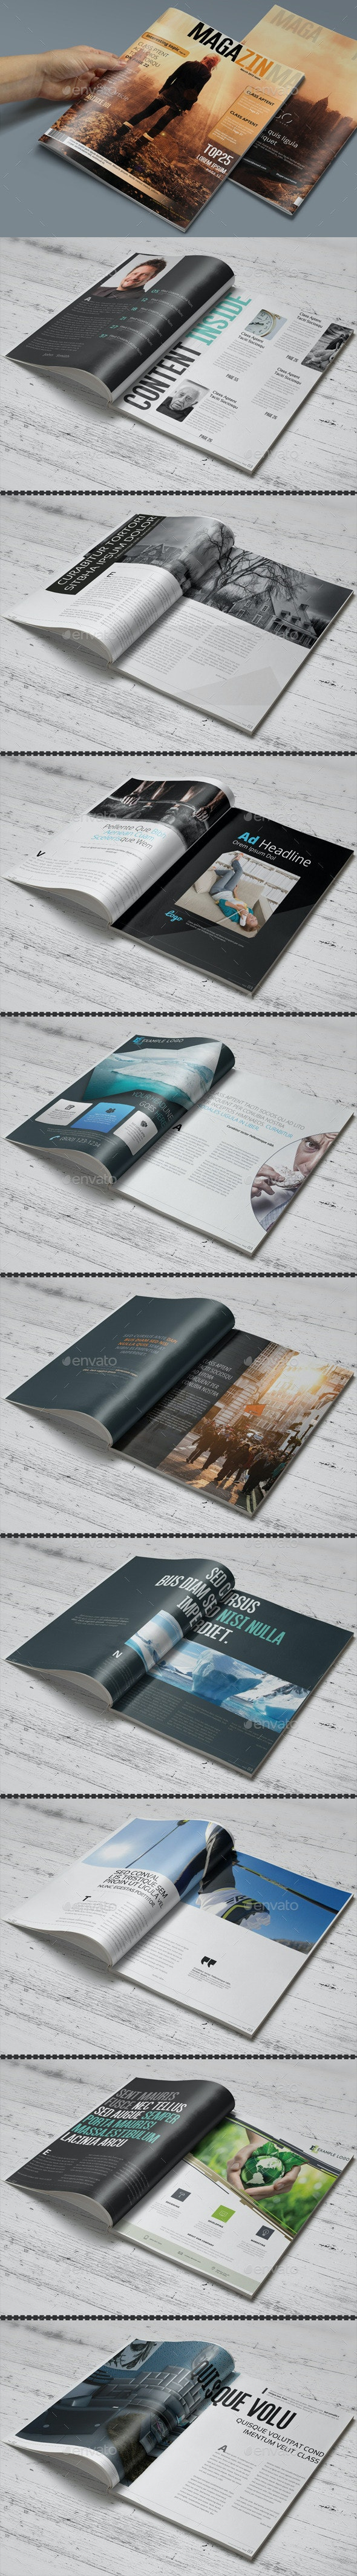 Photoshop Magazine Template - Magazines Print Templates